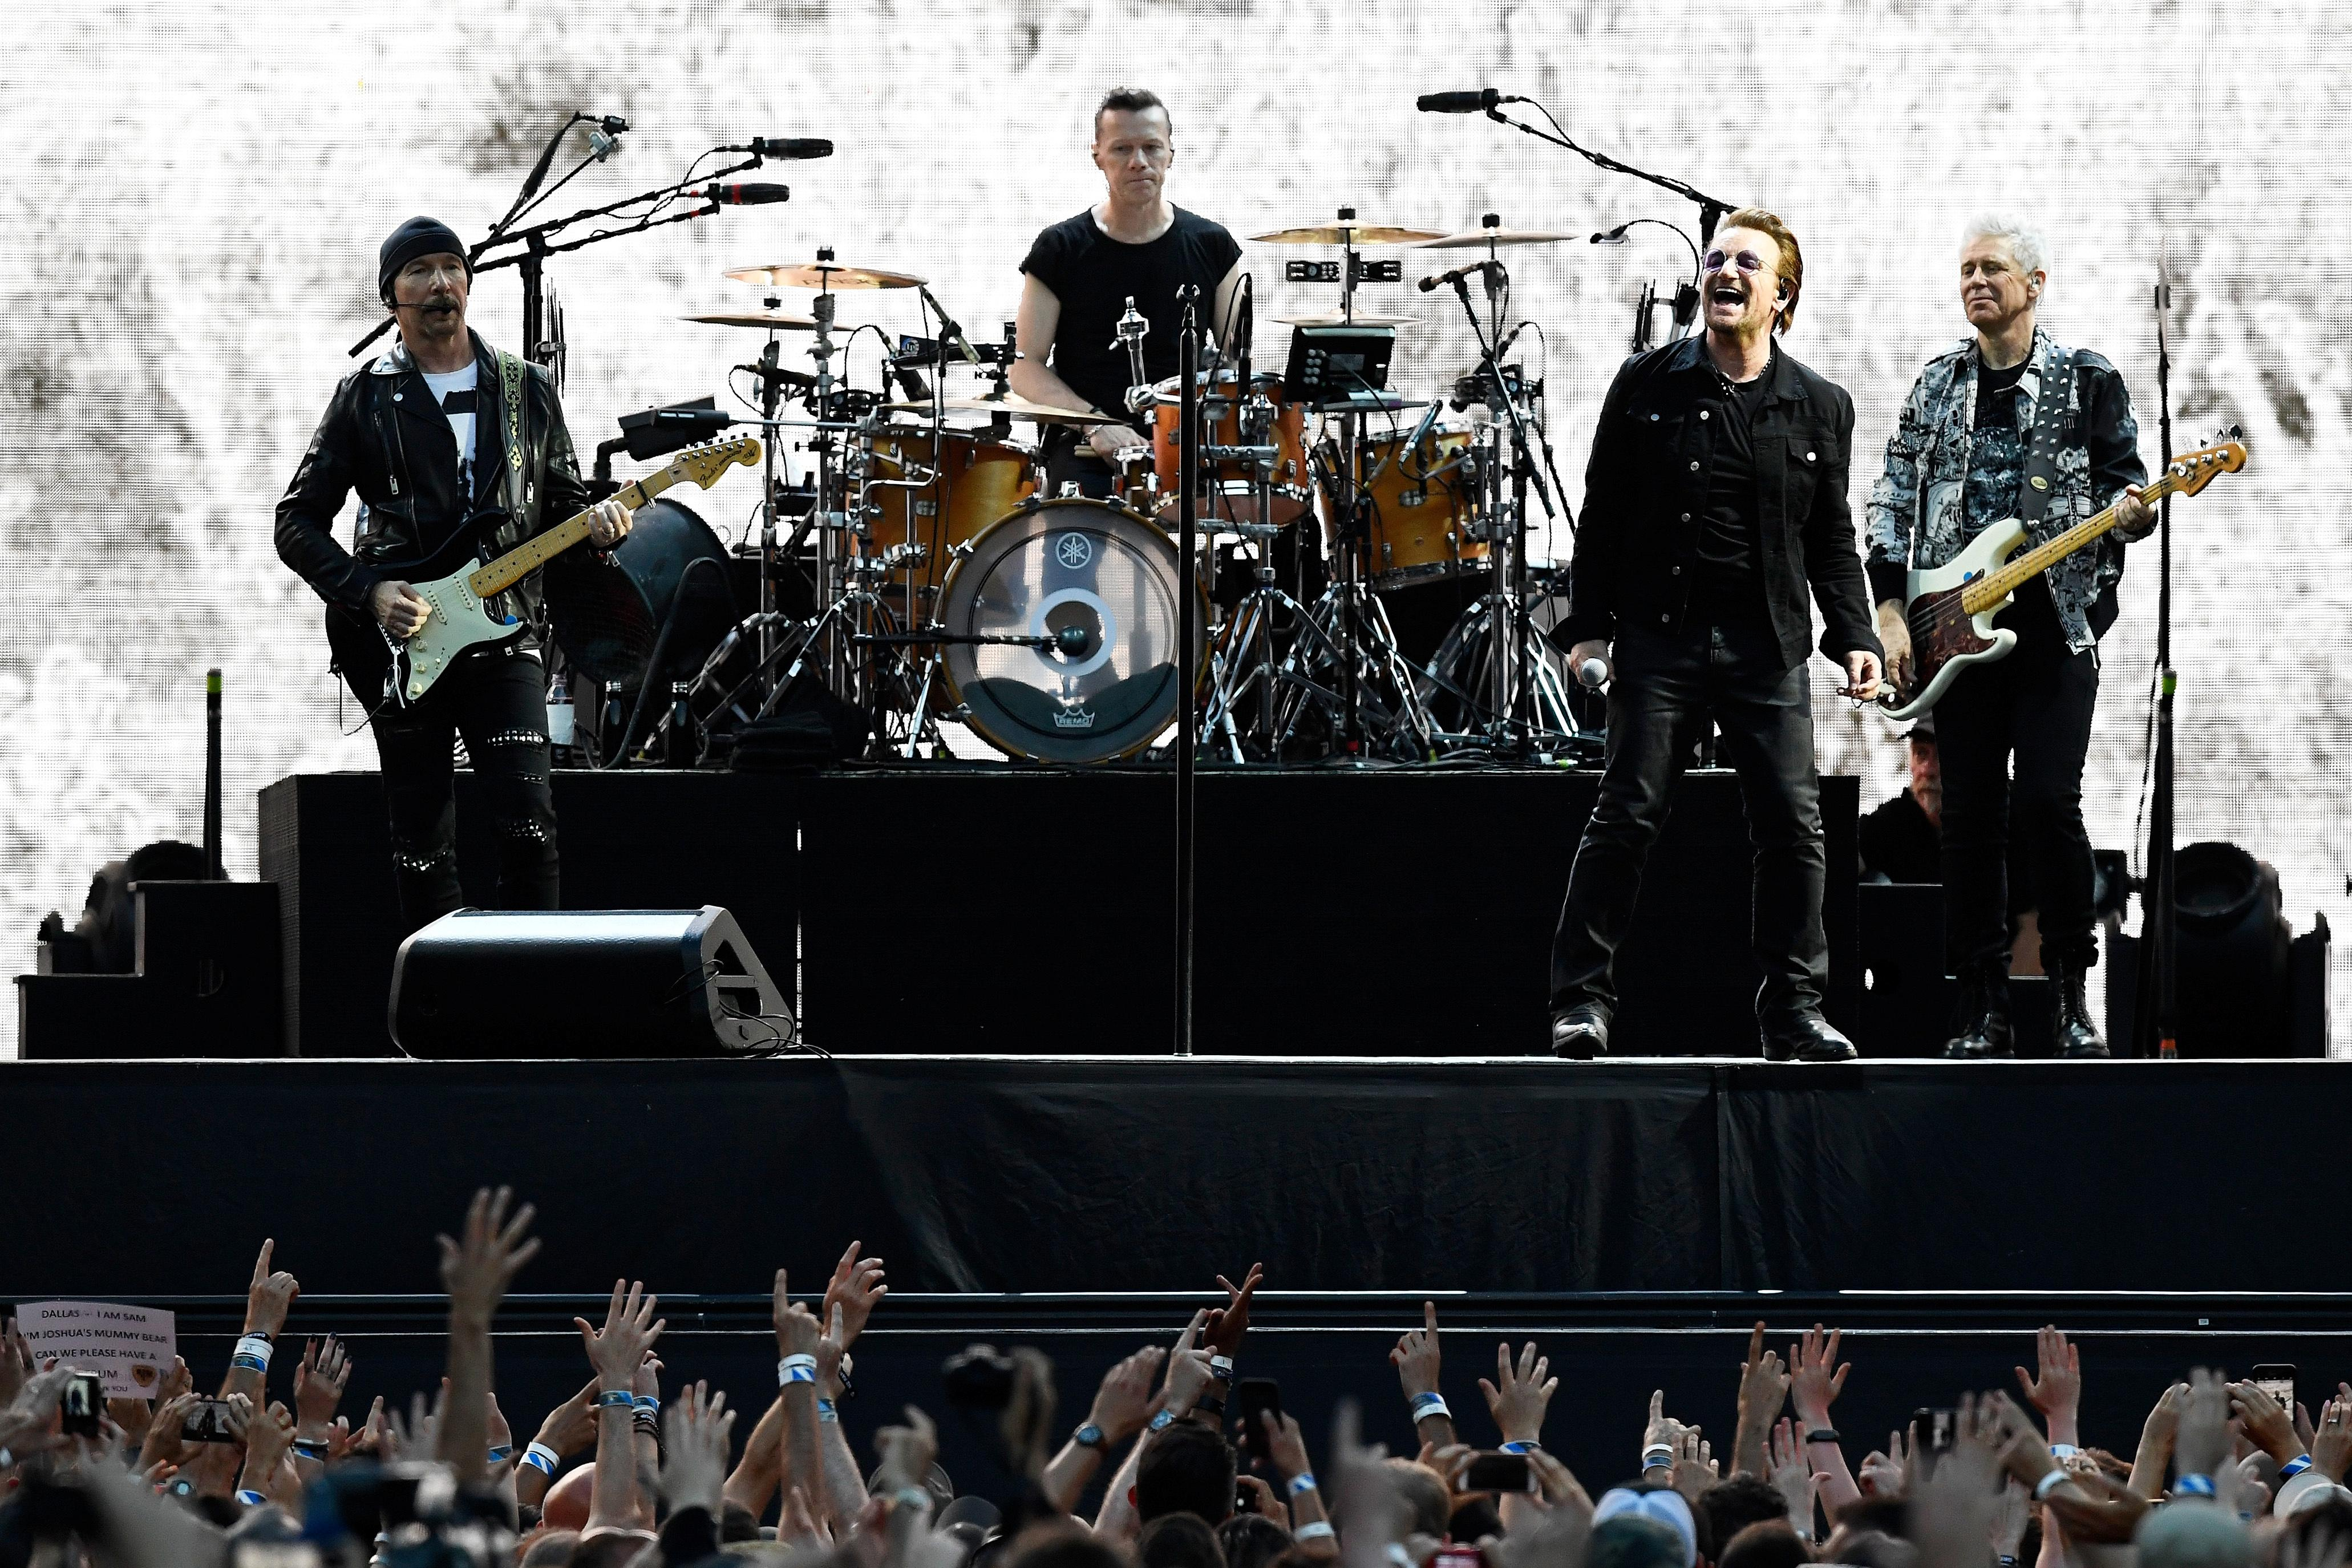 Date confirmed for U2's first Singapore gig: 30 November